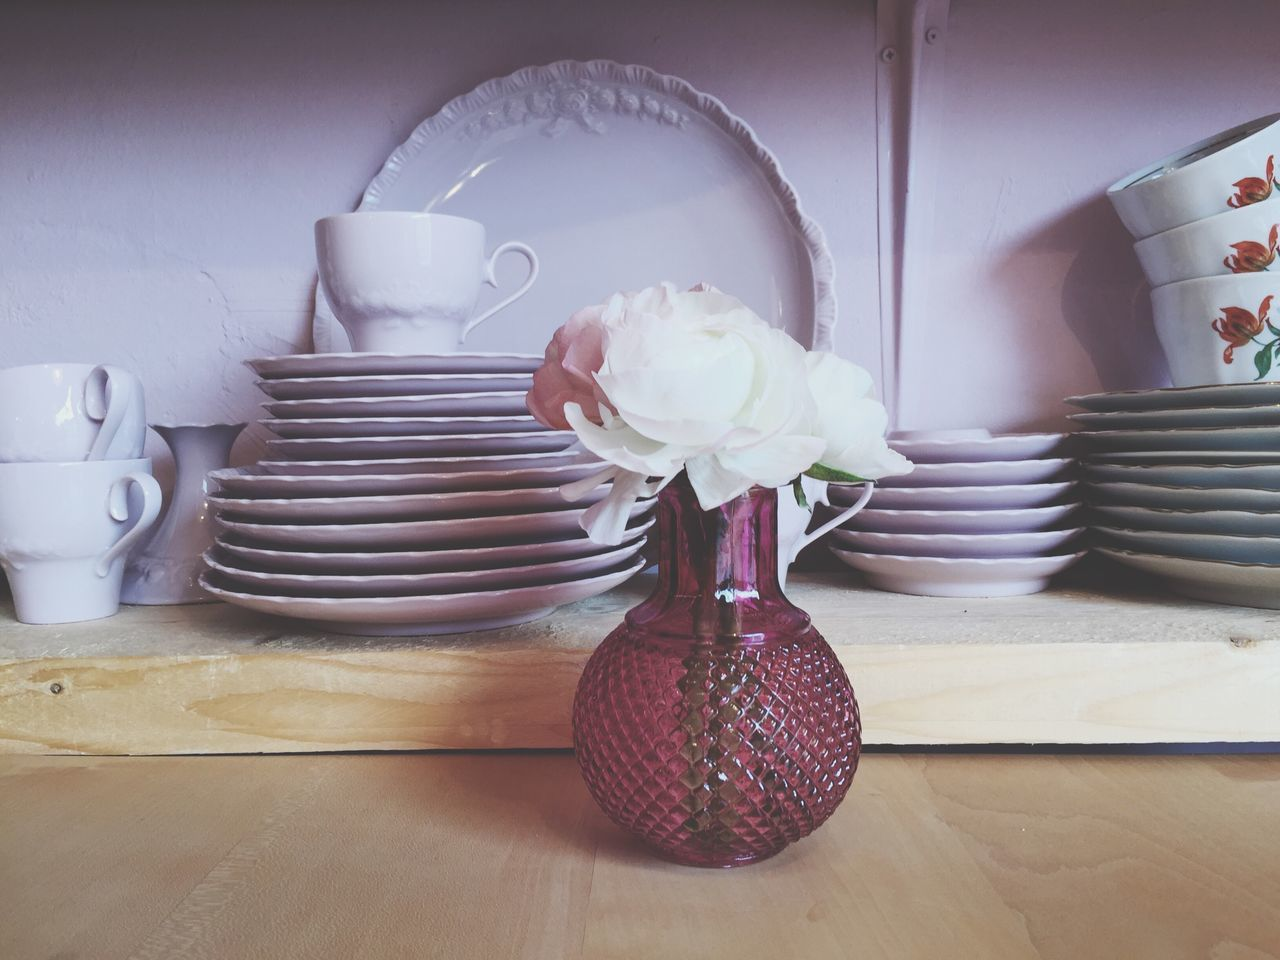 Home Interior Indoors  Table Flower No People Day Close-up Freshness Setting Plates Dishes Pink Color Ranunculus Old